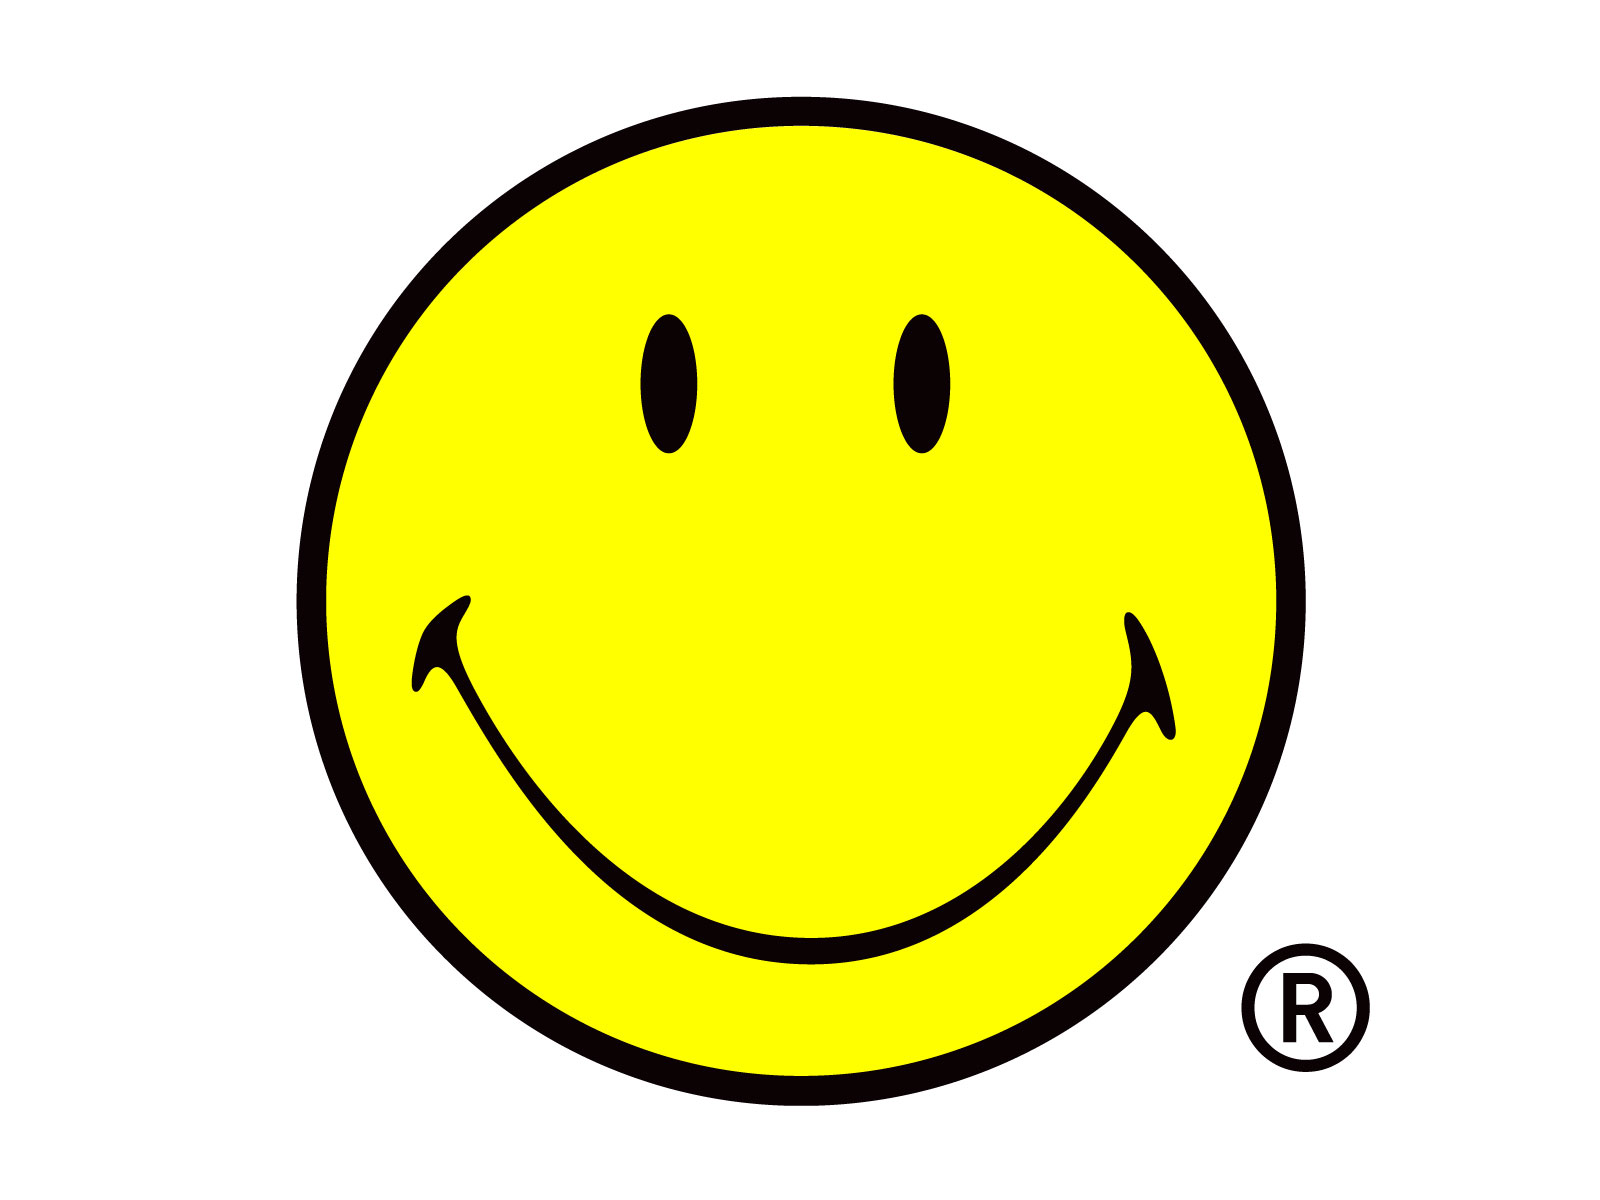 1600x1200 Emoticons And Smiley Products The Original Smiley Brand